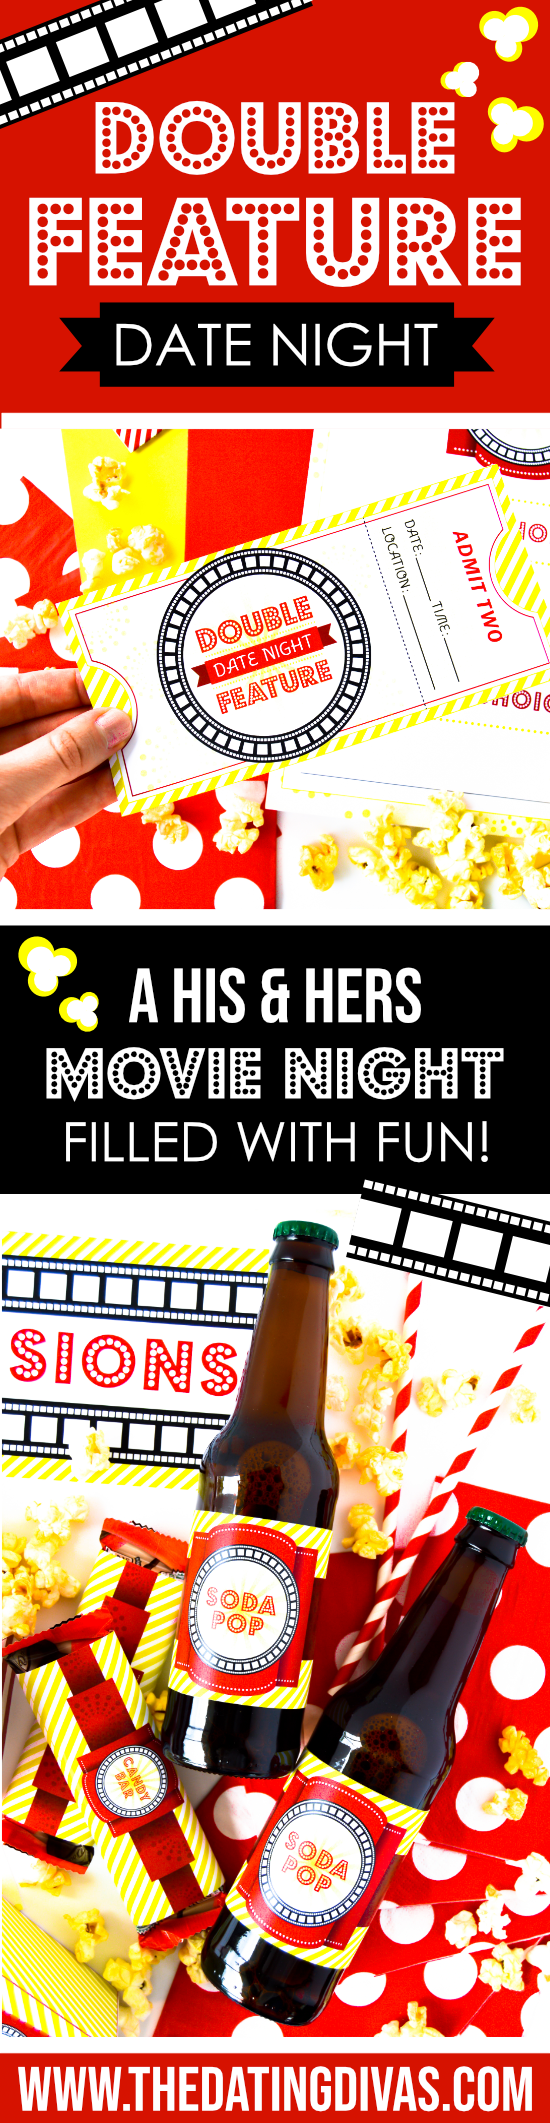 Loving this double feature movie date idea! Free printables and can be done at-home... win win! #TheDatingDivas #DoubleFeatureMovieDate #DateNight